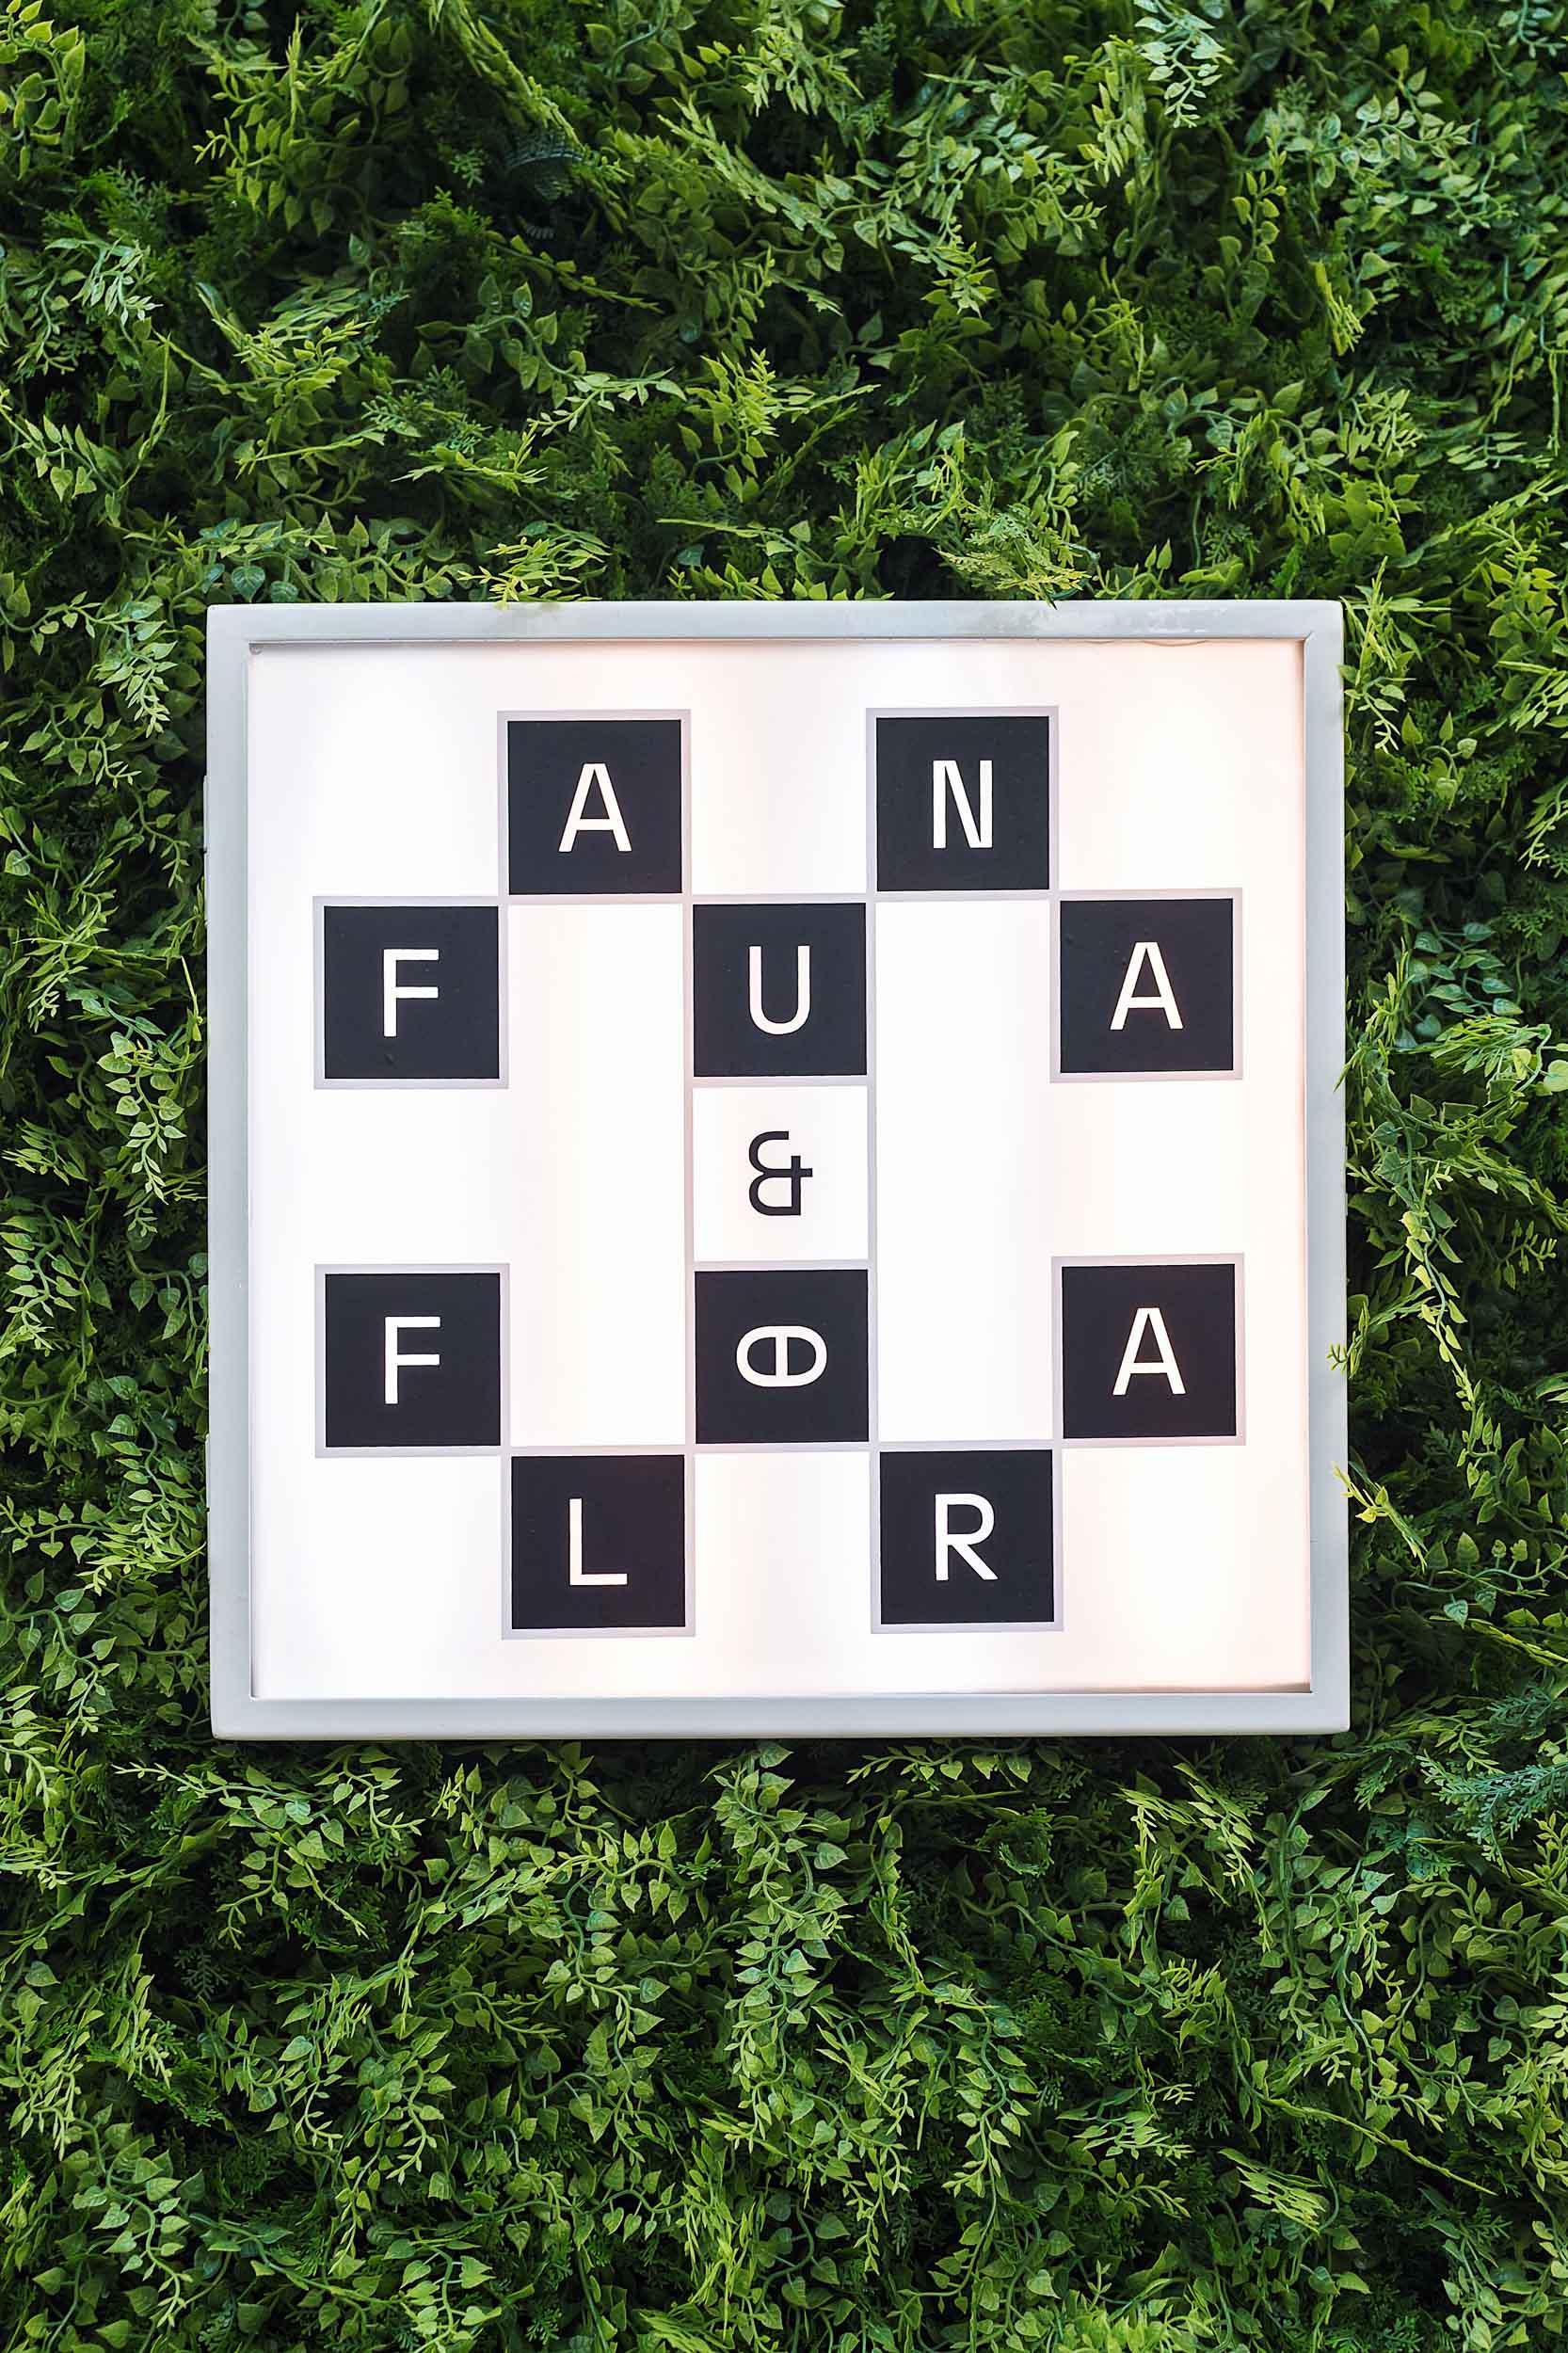 Fauna & Flora serves all day brunch, specialty coffee and fresh juices in Lisbon